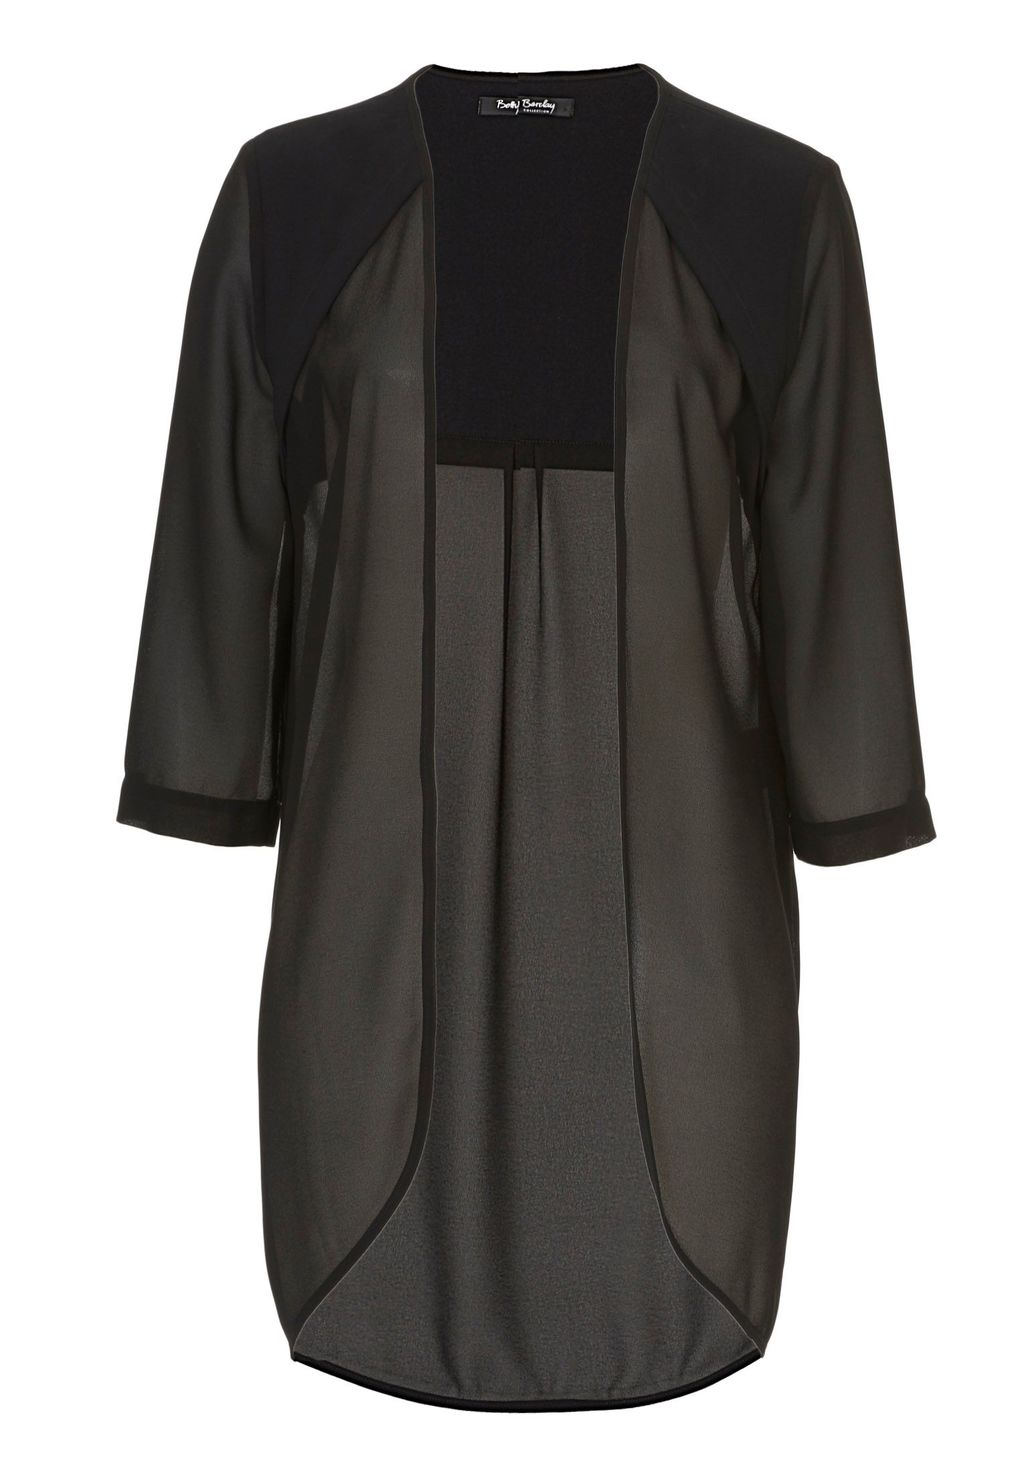 Sheer Blouse With Three Quarter Sleeves, Black - pattern: plain; length: below the bottom; neckline: collarless open; style: open front; predominant colour: black; occasions: evening; fibres: polyester/polyamide - 100%; fit: loose; sleeve length: 3/4 length; sleeve style: standard; pattern type: fabric; texture group: other - light to midweight; season: s/s 2016